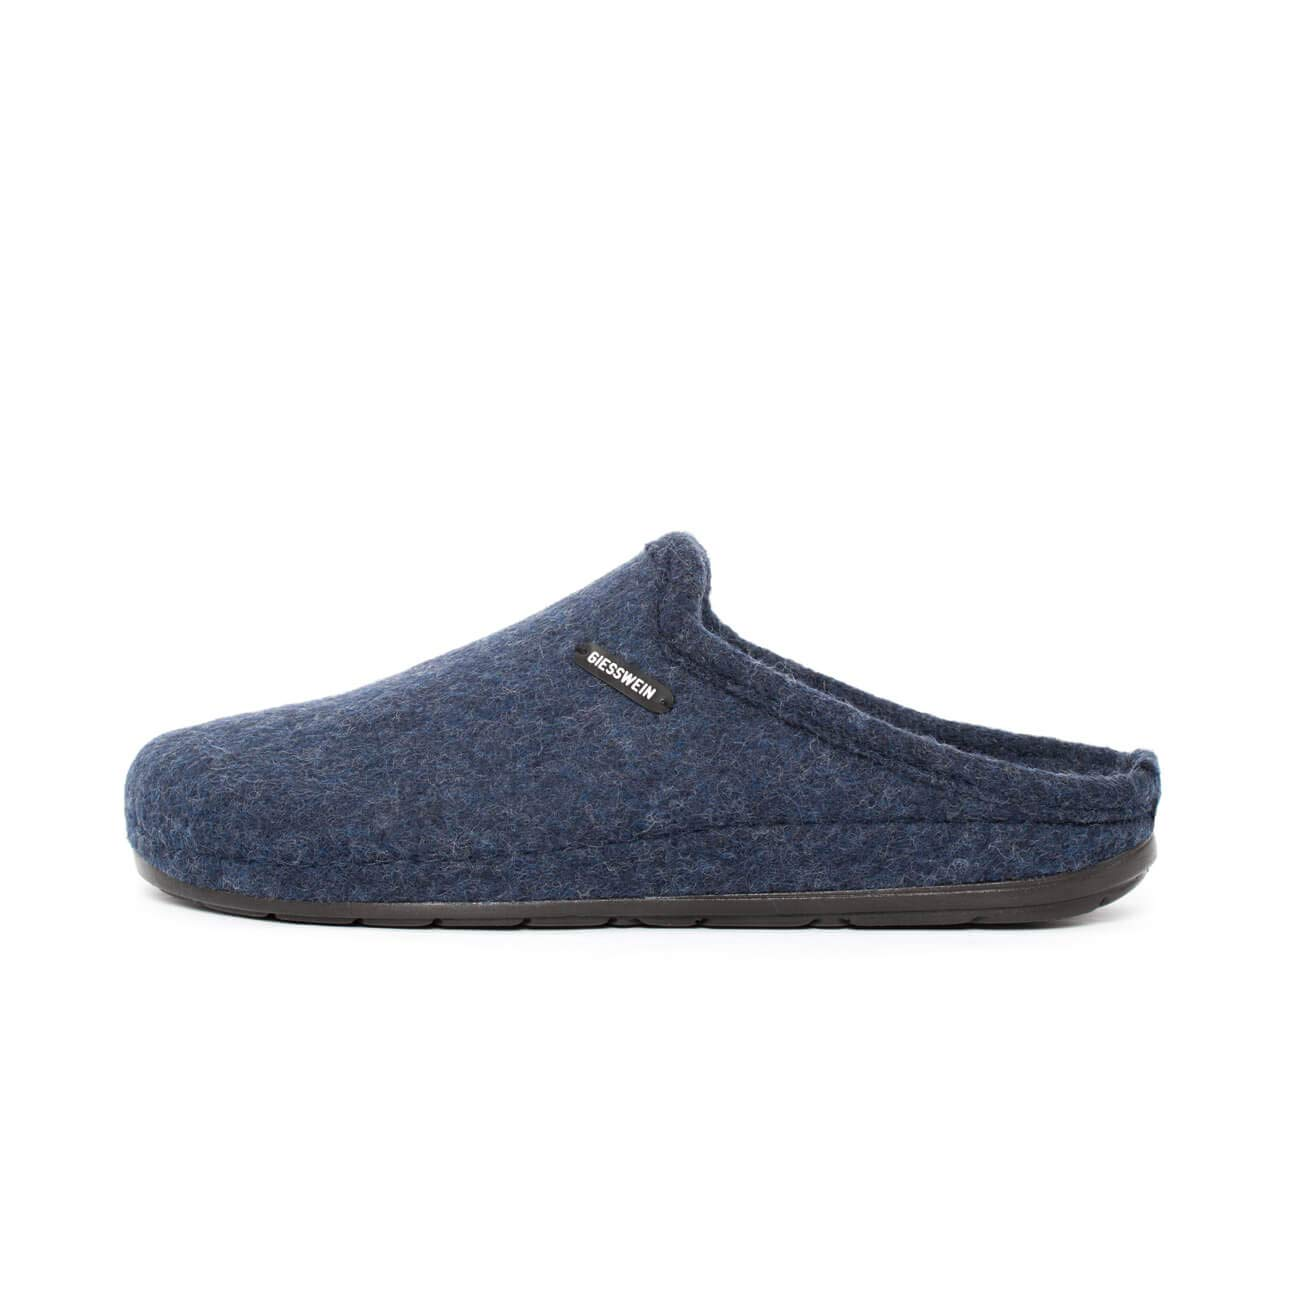 Giesswein Jabel, Chaussons Mules Homme